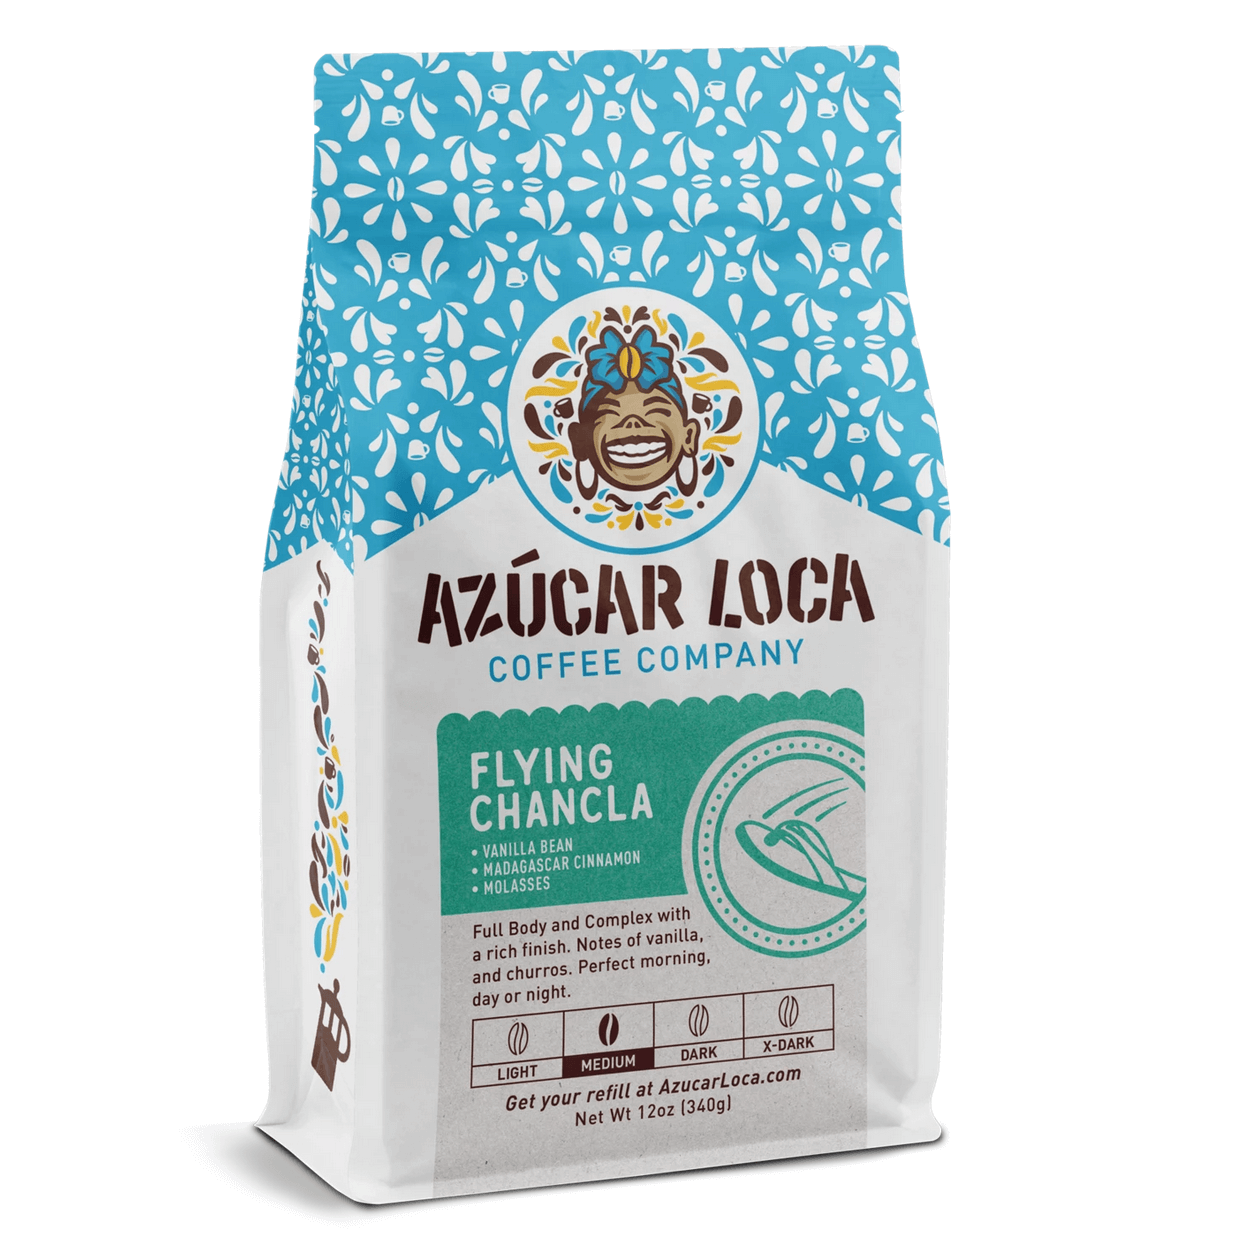 Flying Chancla from Azucar Loca Coffee Company